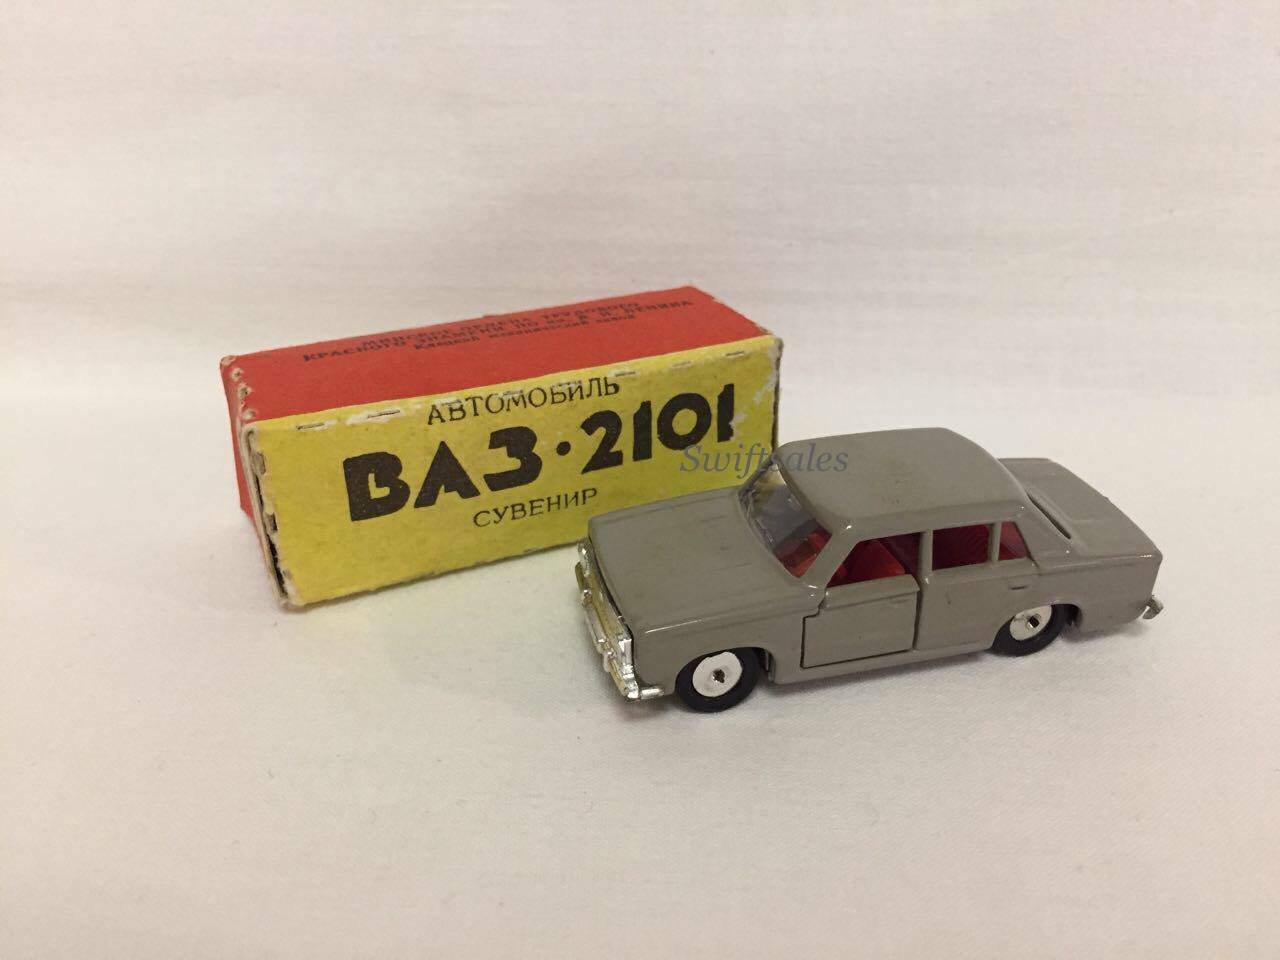 Vintage USSR Soviet Model VAZ 2101 Diecast Car Made In Belarus - New In Box  2